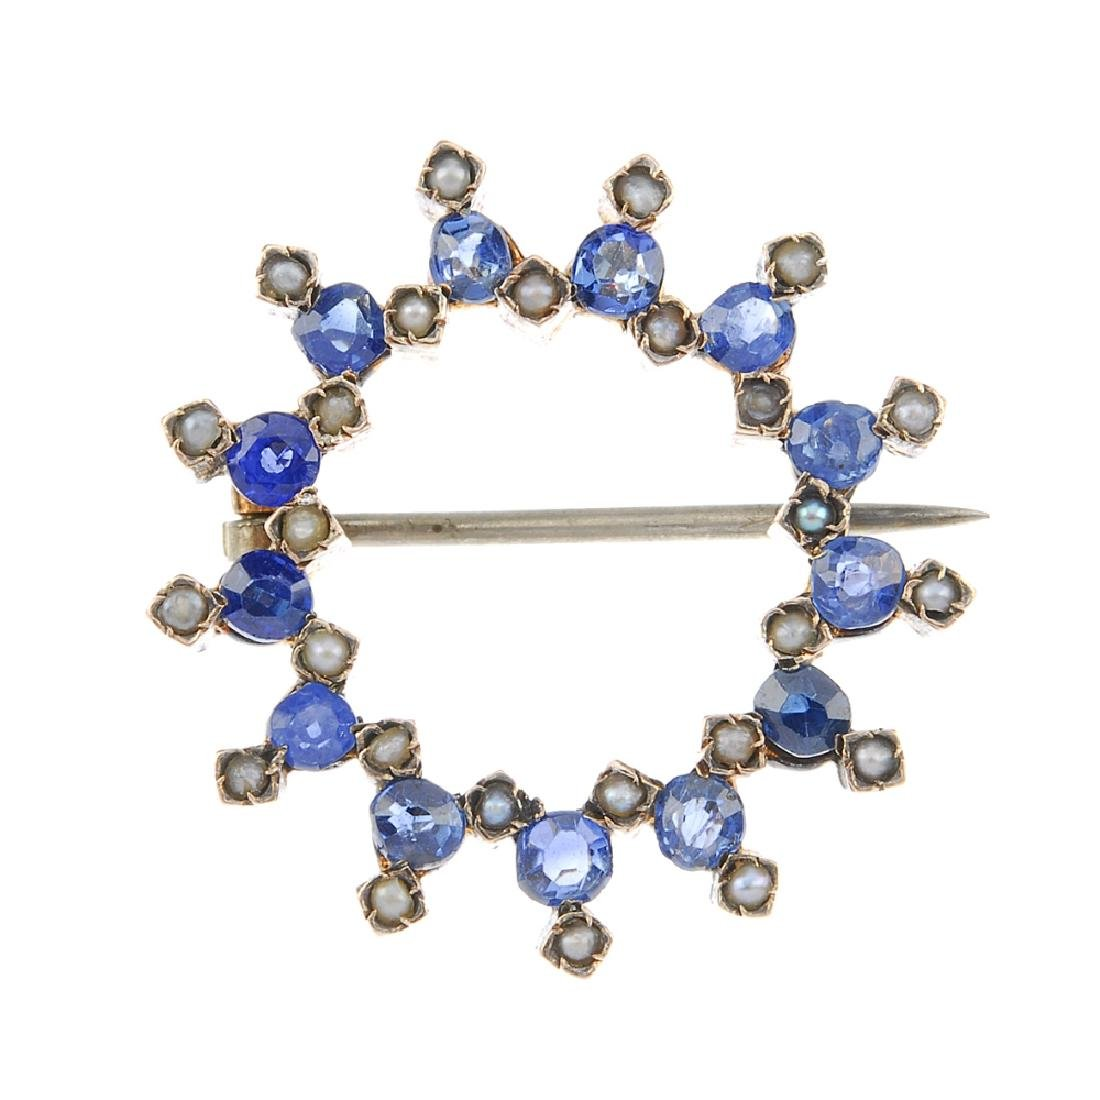 A sapphire and split pearl wreath brooch. Designed as a